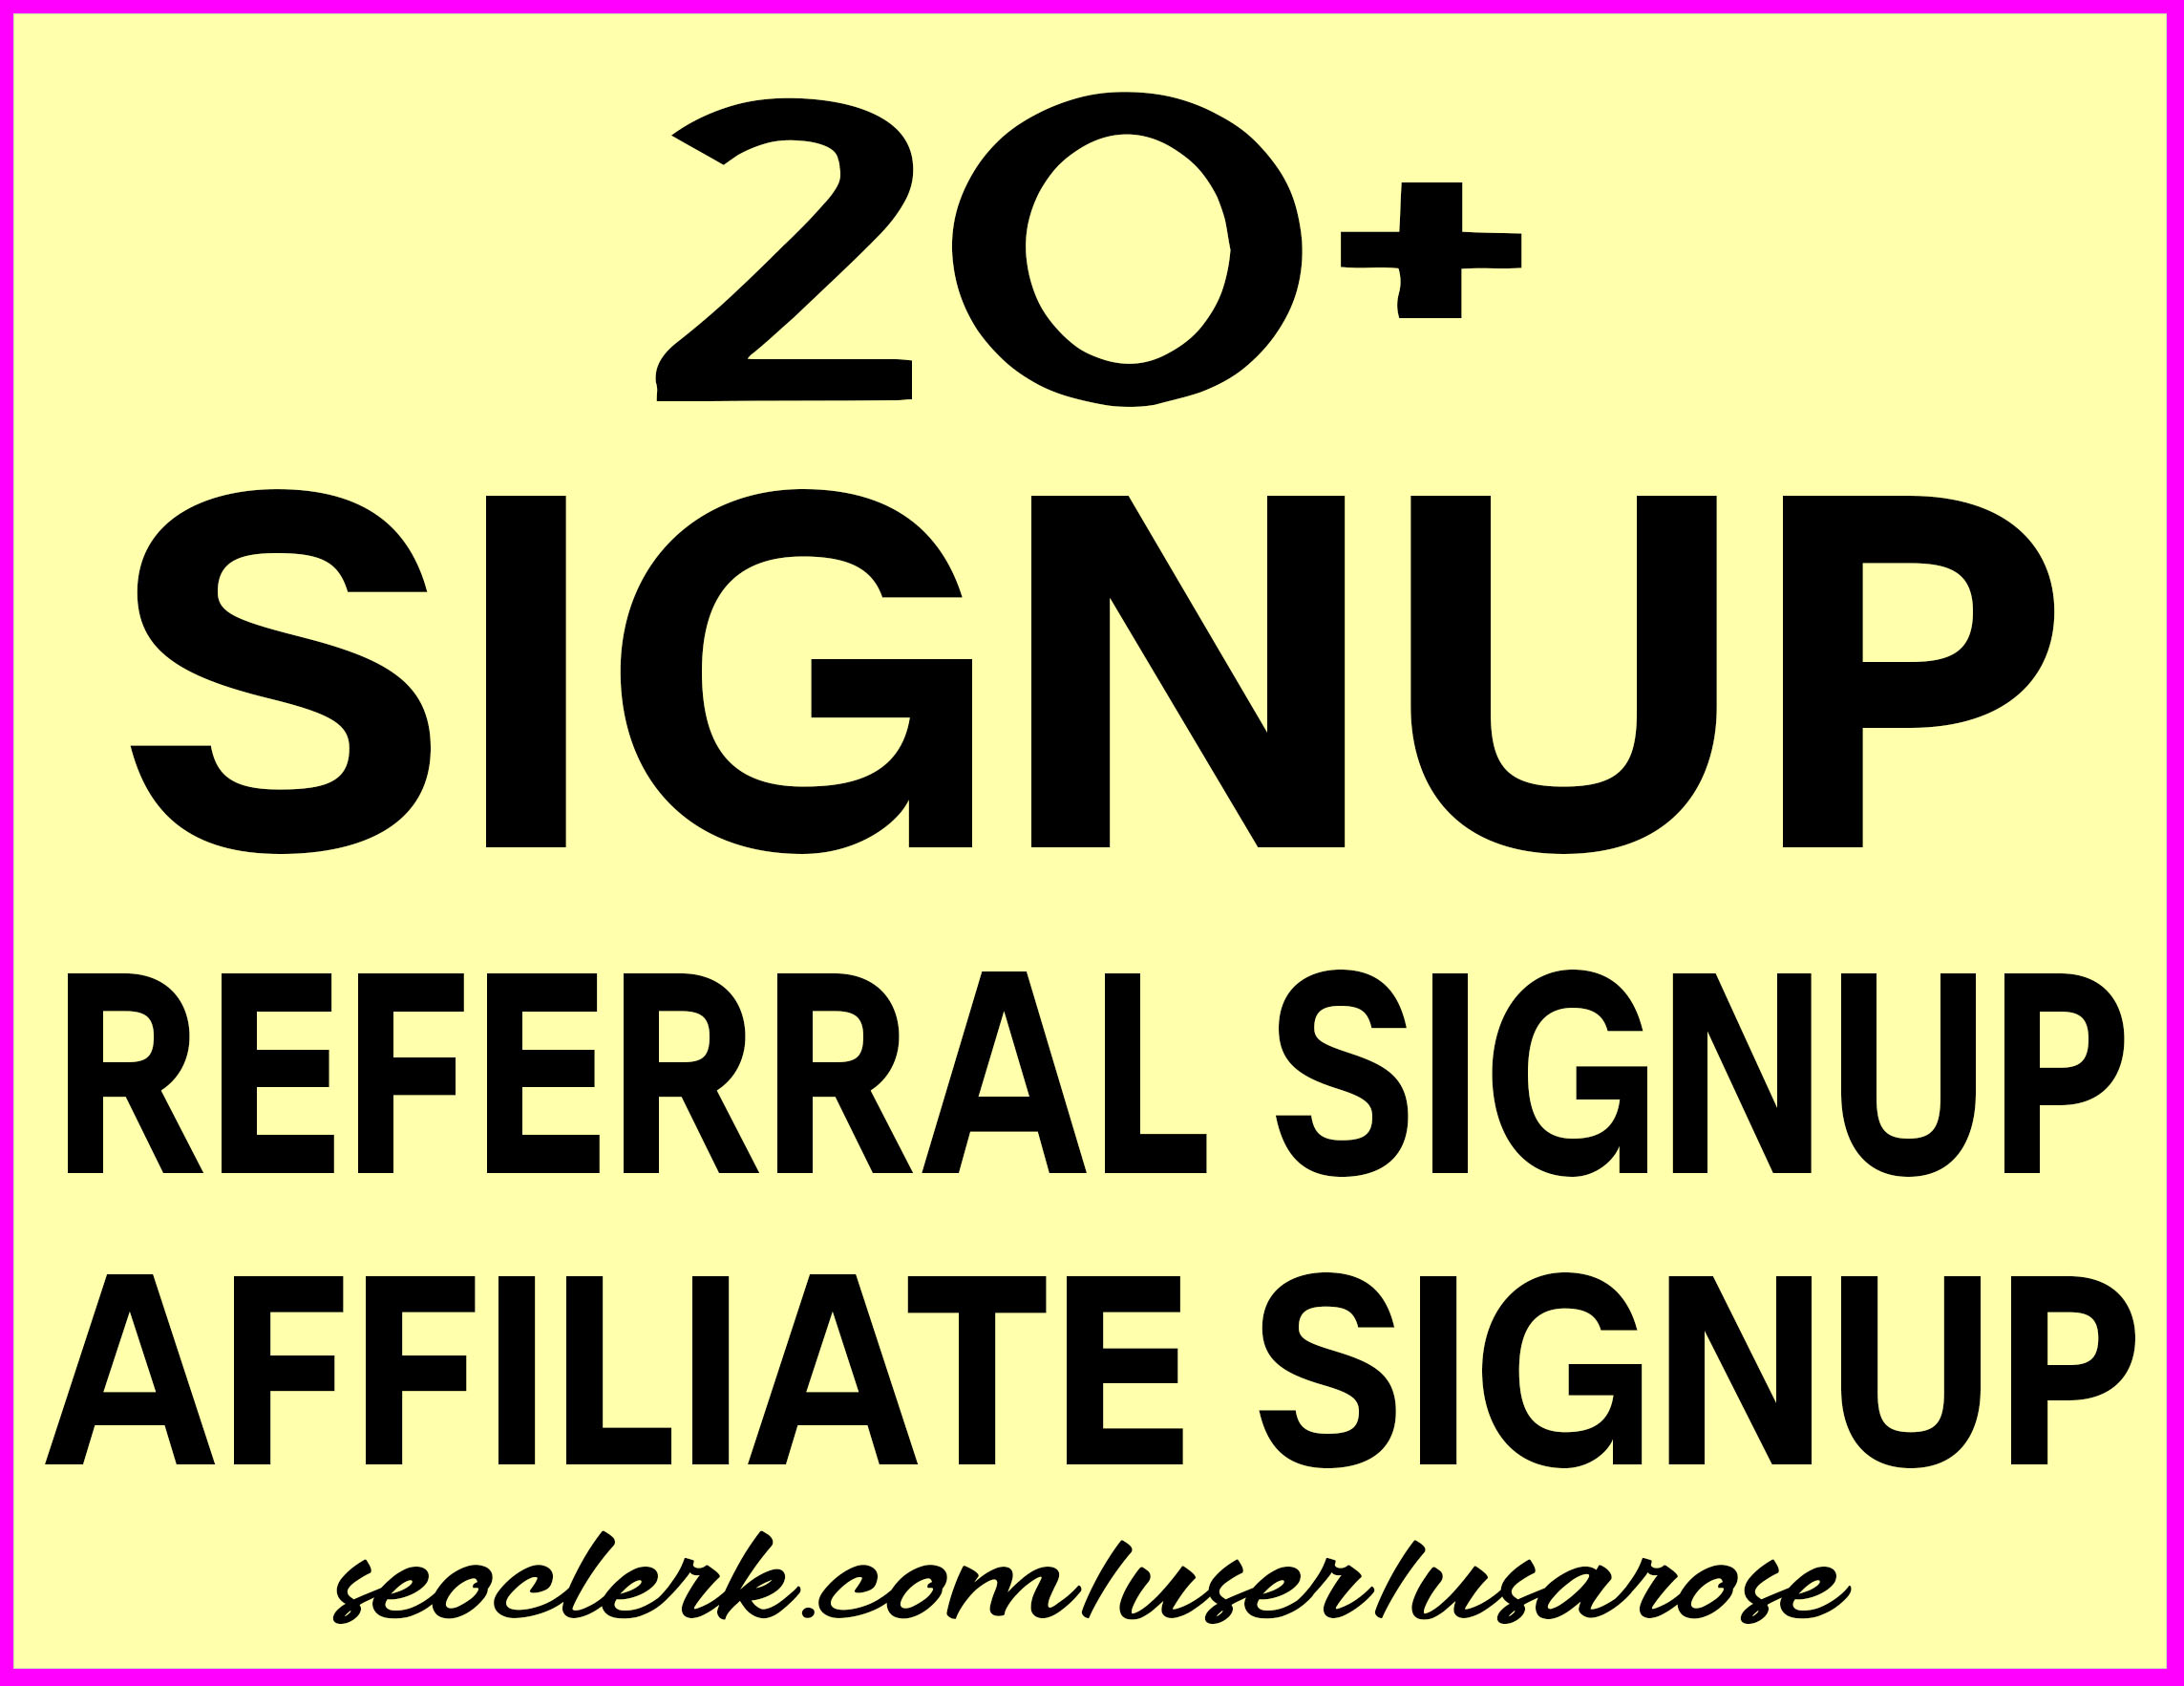 Give 20+ Referral Signup or Affiliate Signup Within 12 hours